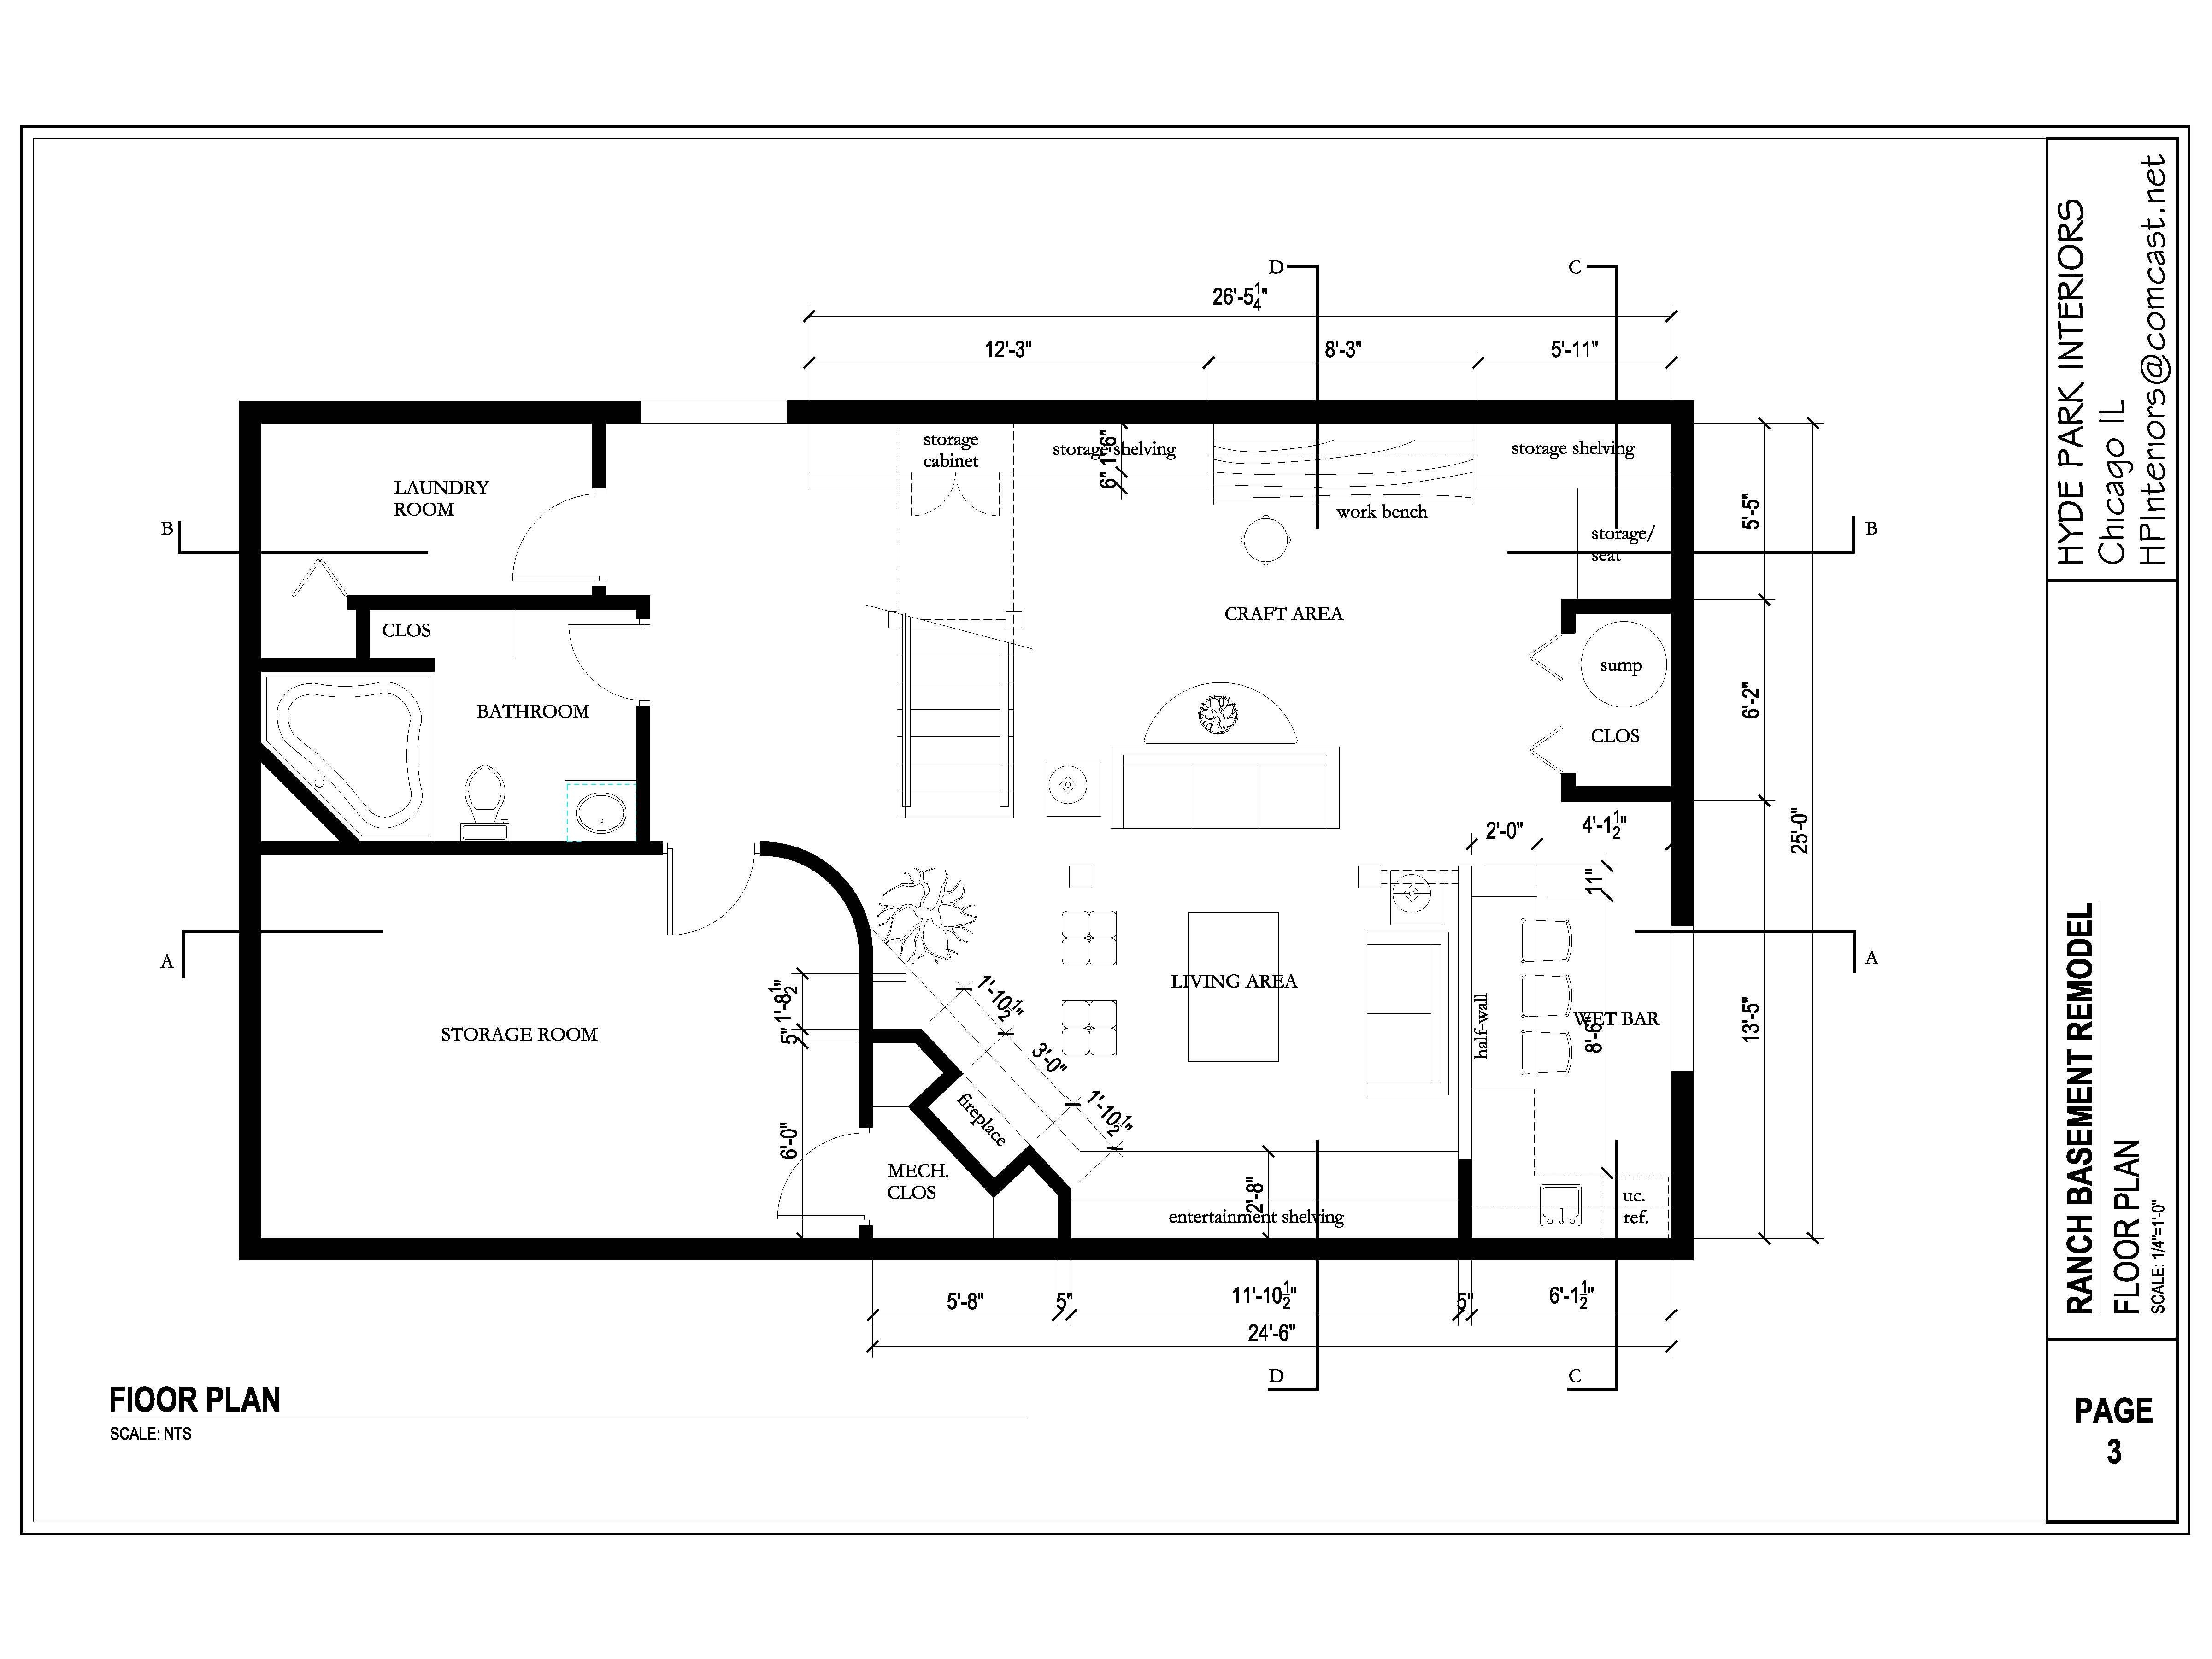 Captivating Basement Layout Design With Home Remodel Ideas